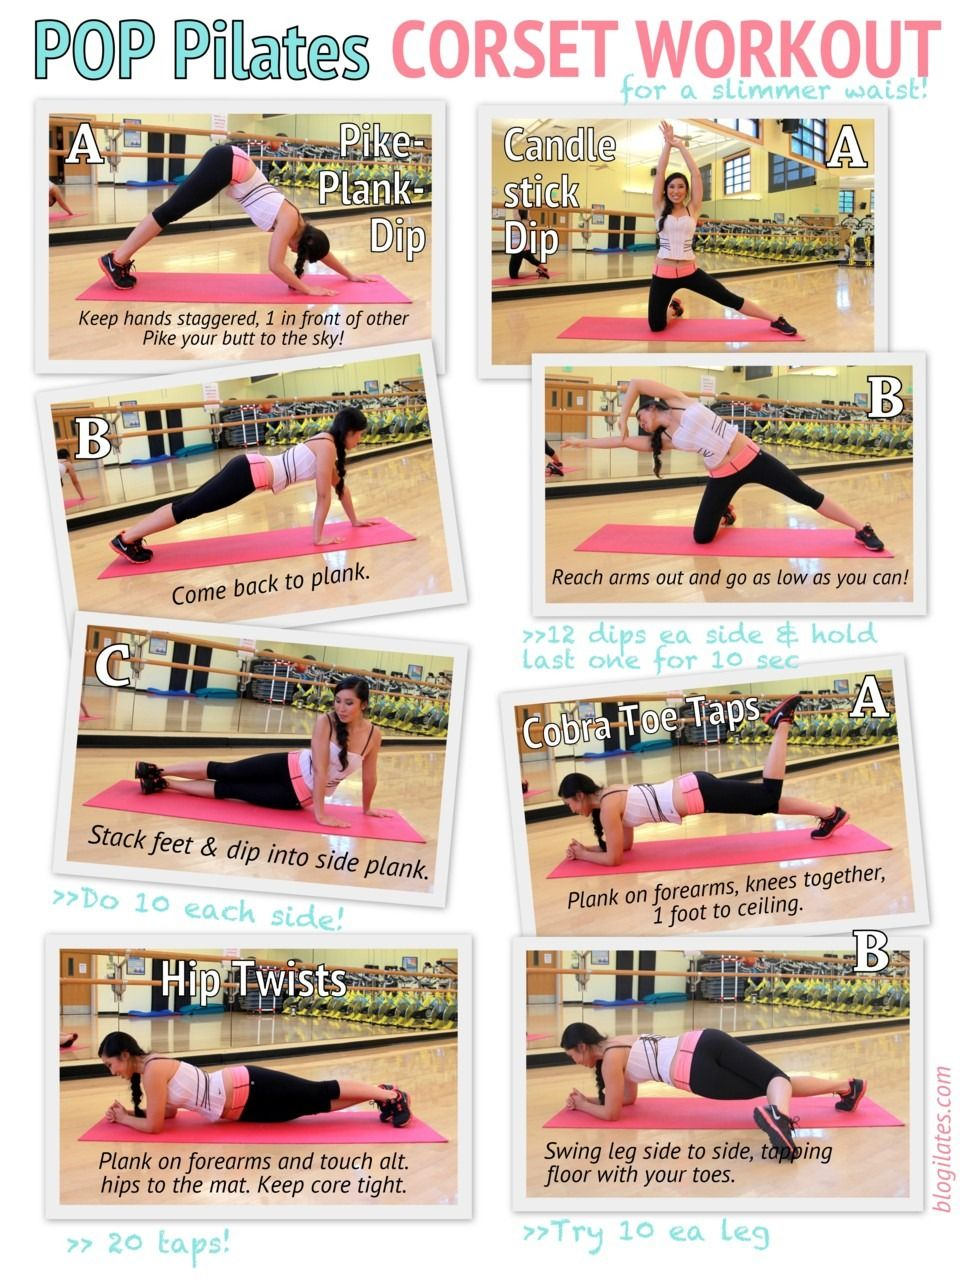 Back On Pointe Blogilates Corset Workout Printable Try This Pop Pilates Workout Waist Workout